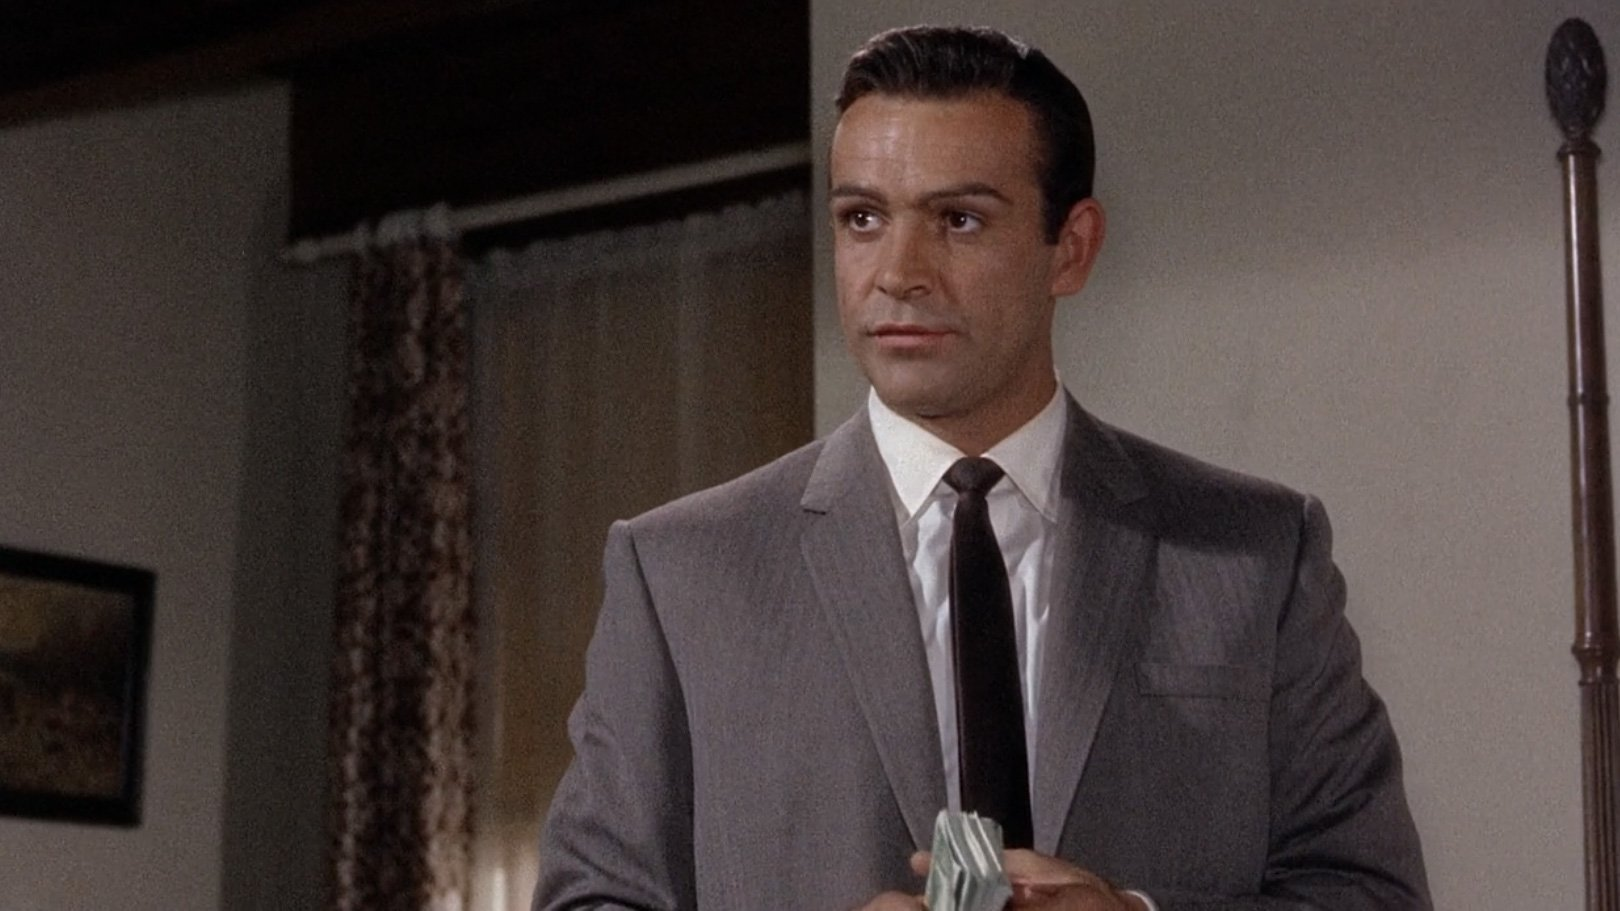 Marnie Sean Connery S Taupe Herringbone Suit Bond Suits